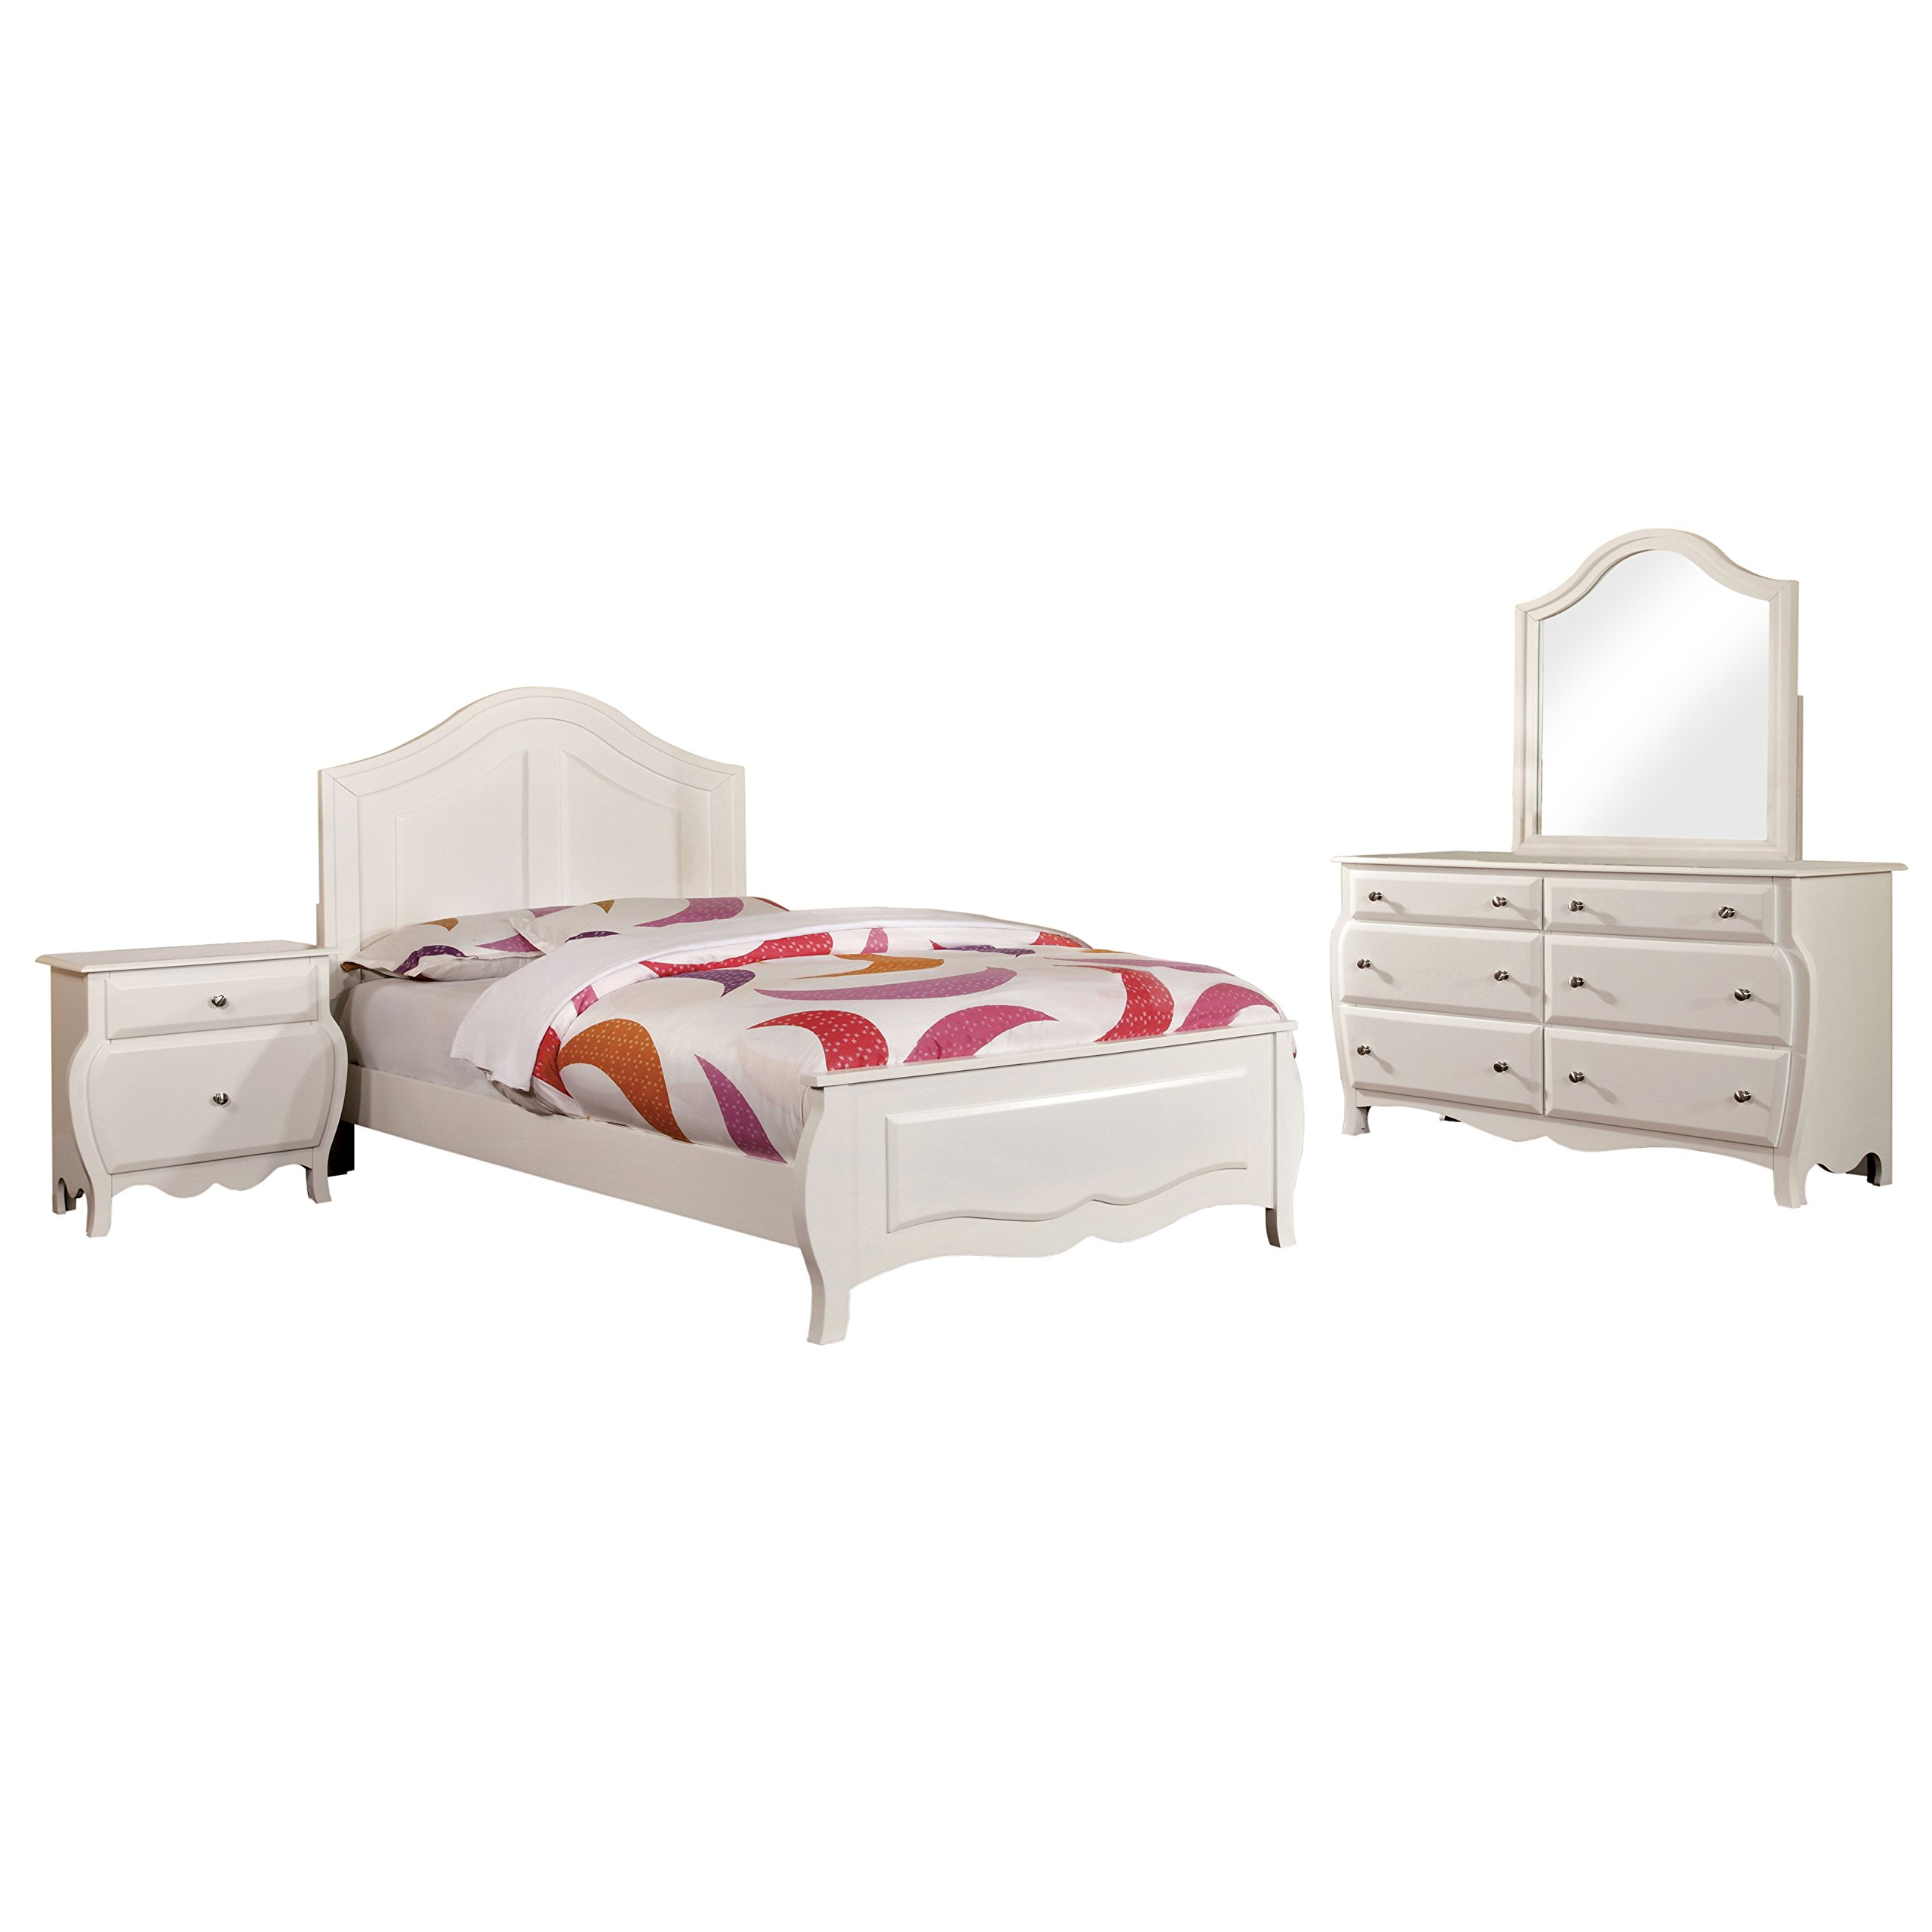 HOMES: Inside + Out 4 Piece ioHOMES Lionel Youth Bedroom Set, Full, White by HOMES: Inside + Out (Image #1)